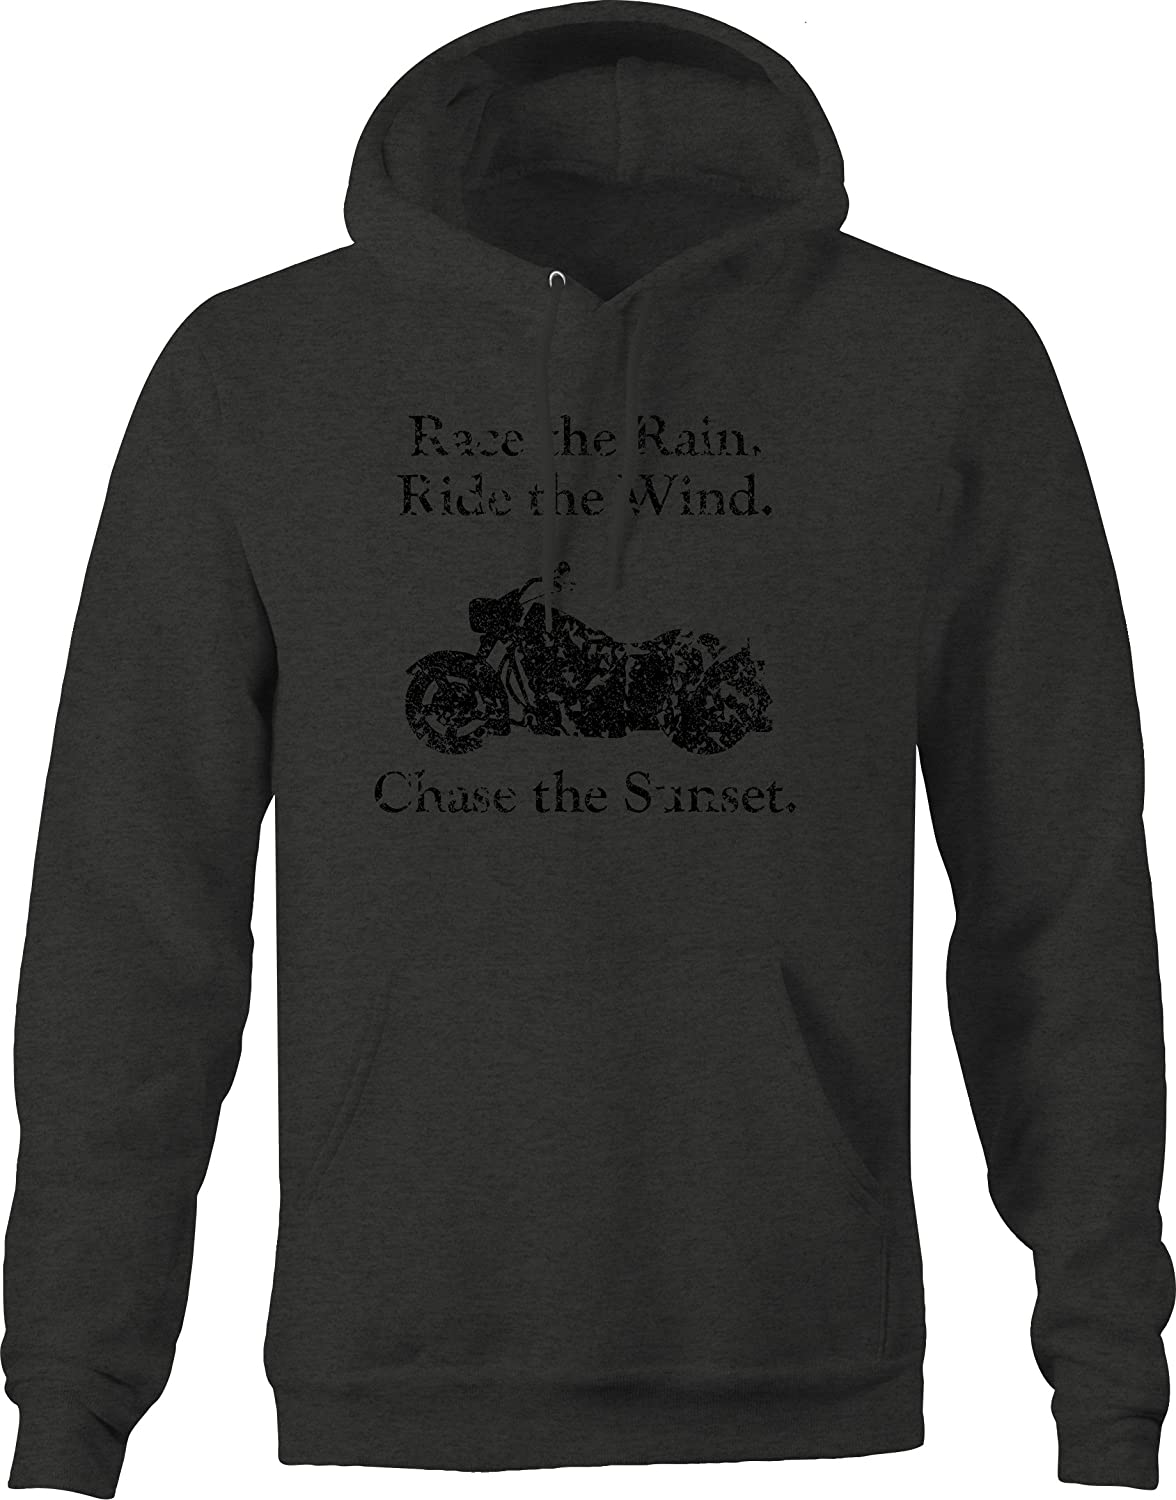 Vintage Race Rain Ride Wind Chase Sunset Cruiser Graphic Hoodie for Men